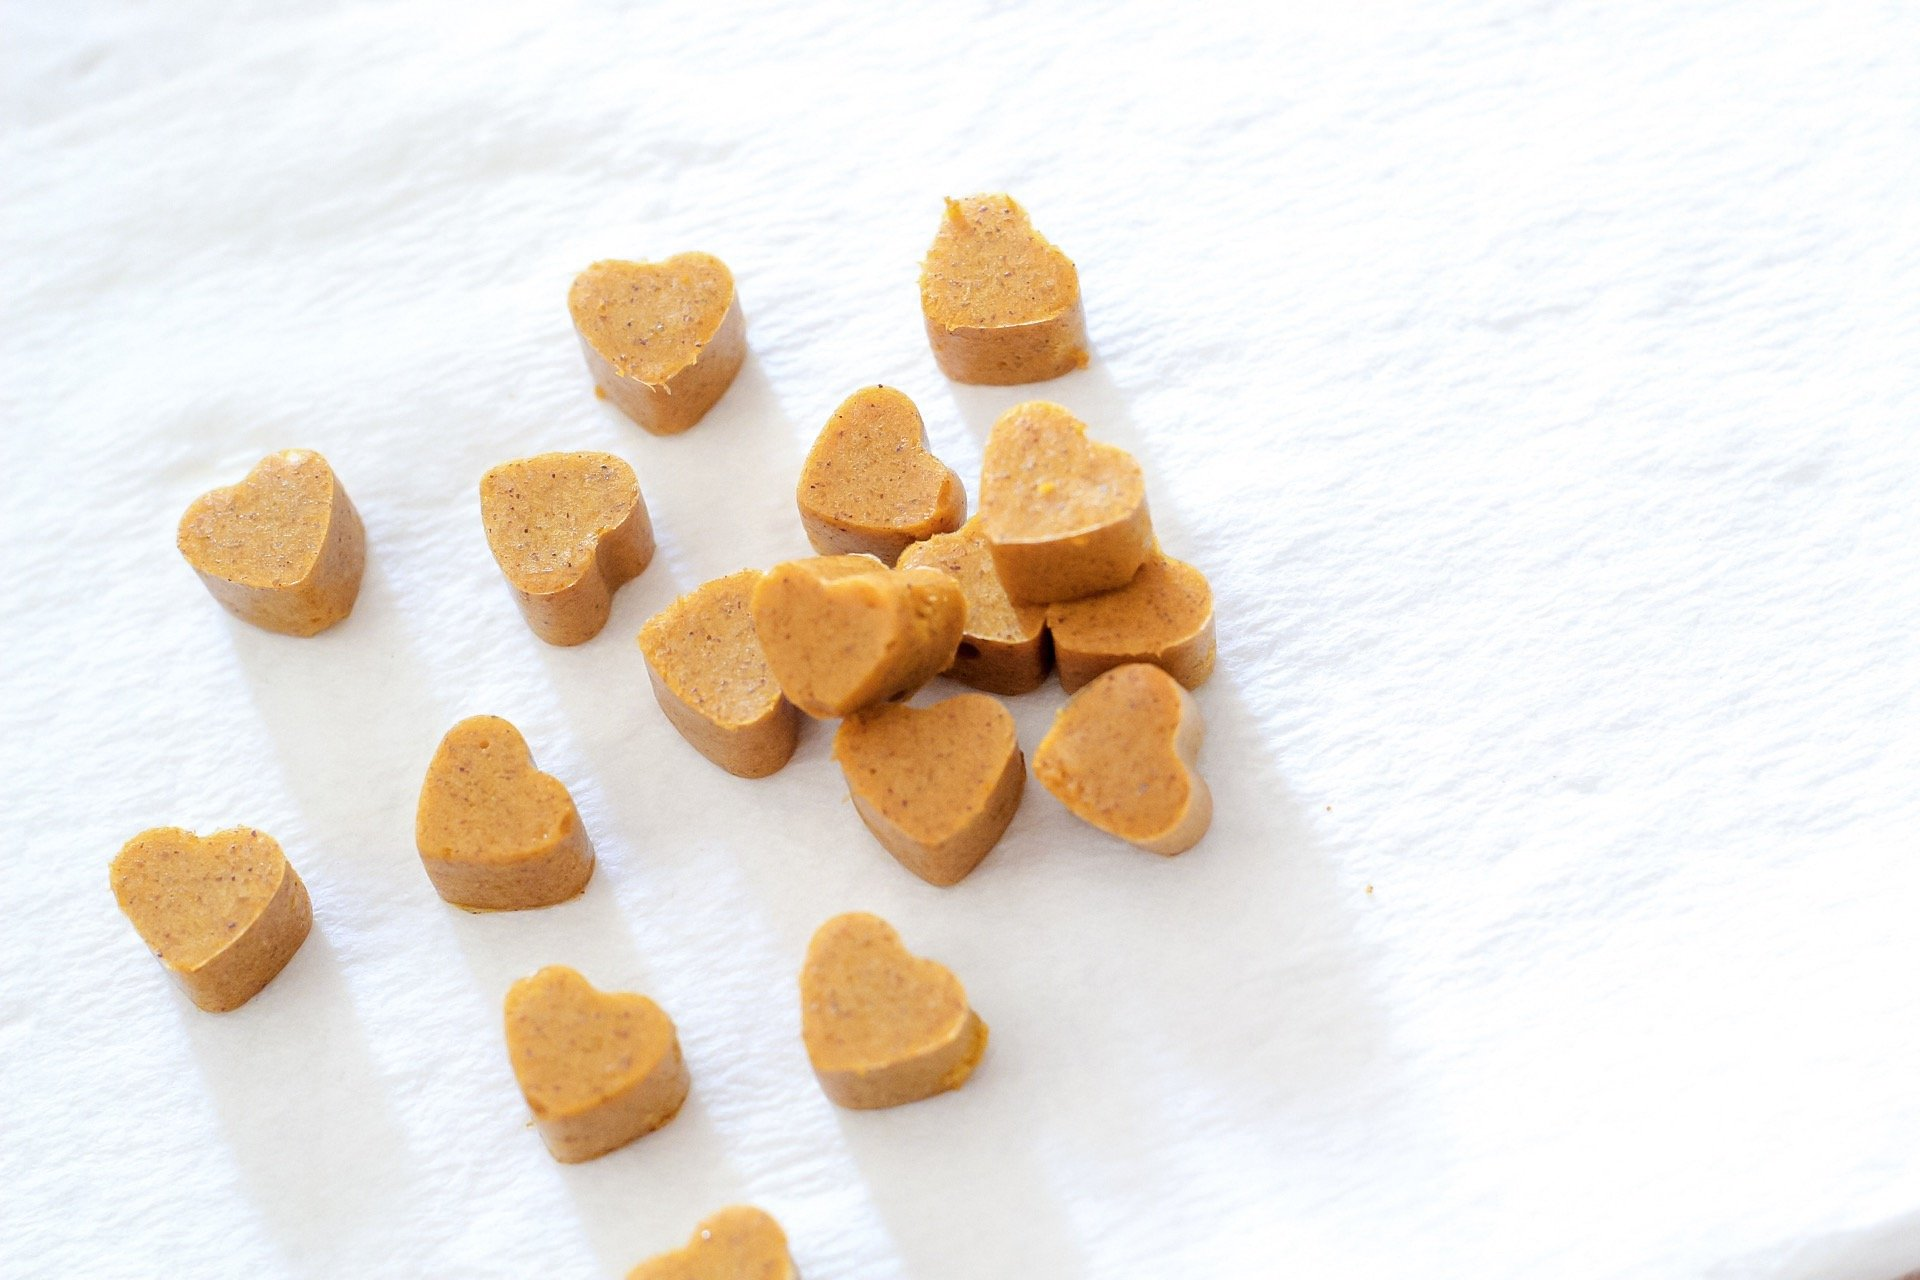 Homemade gummies ready to eat! They are a golden honey color with tiny flecks of brown from the cinnamon